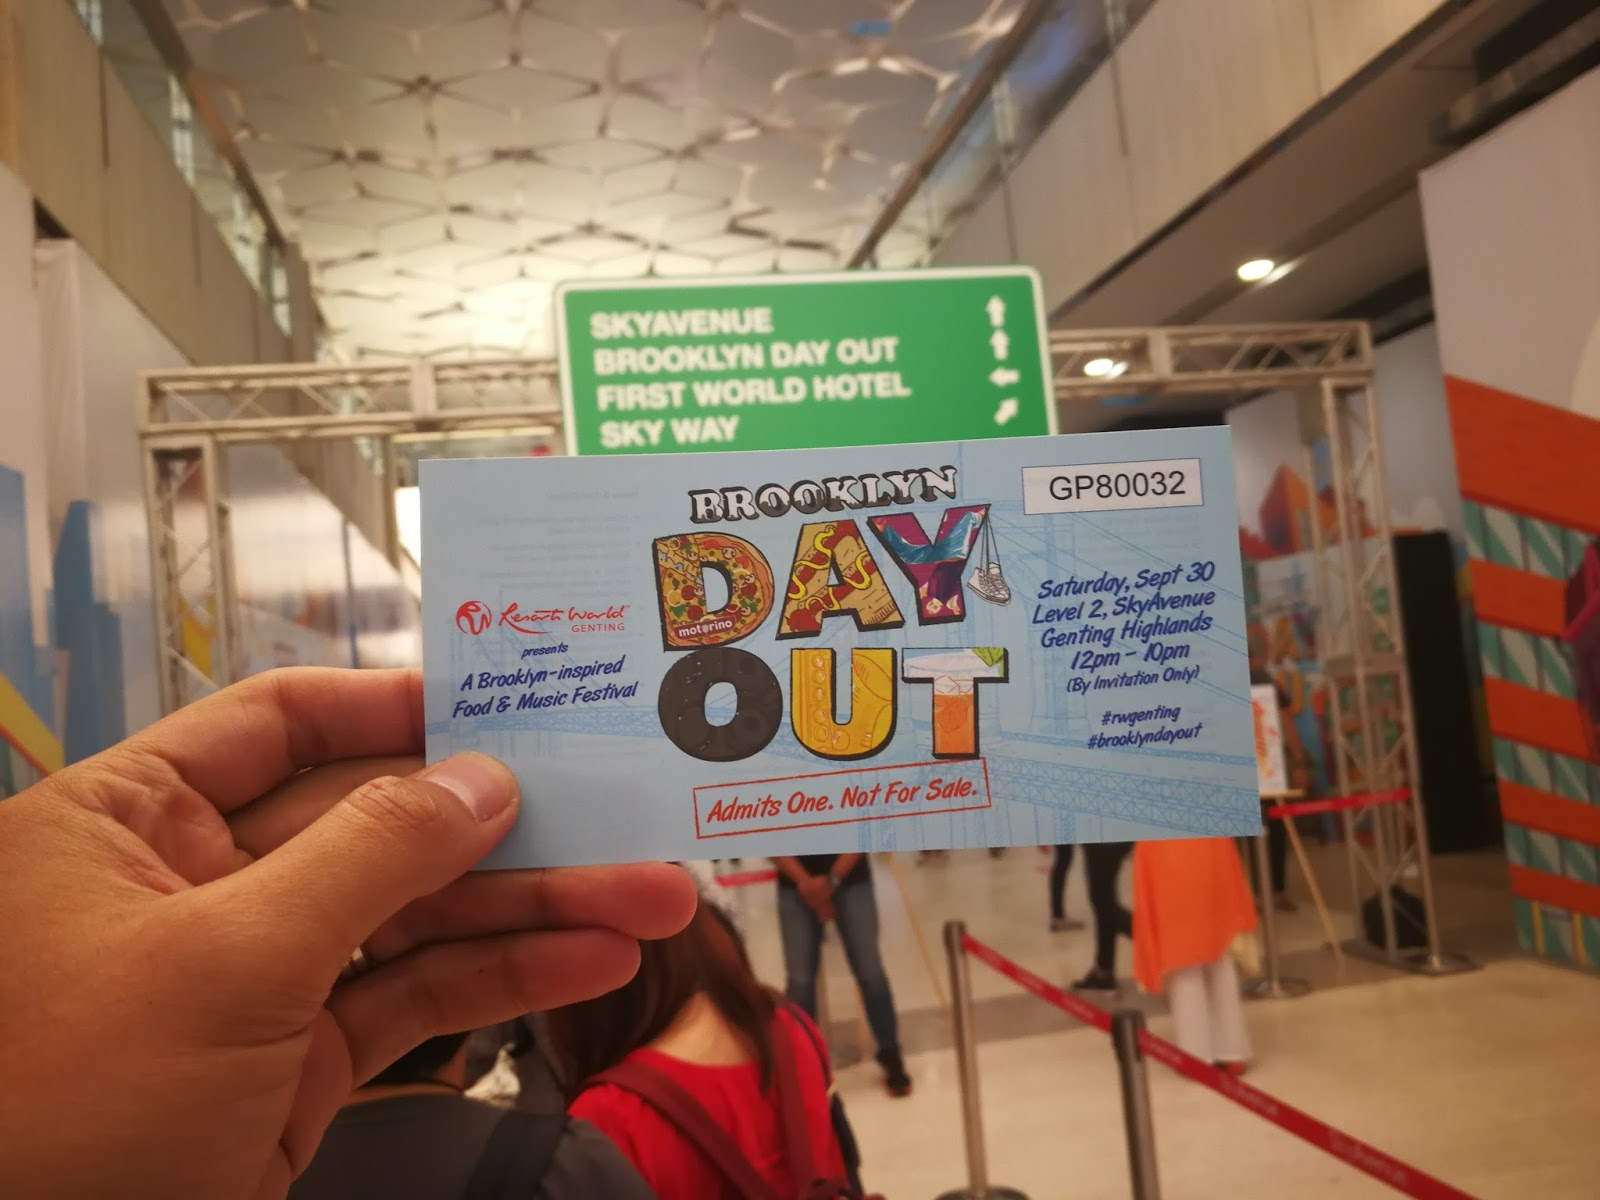 FESTIVAL BROOKLYN DAY OUT DI SKYAVENUE RESORTS WORLD GENTING MERIAH!